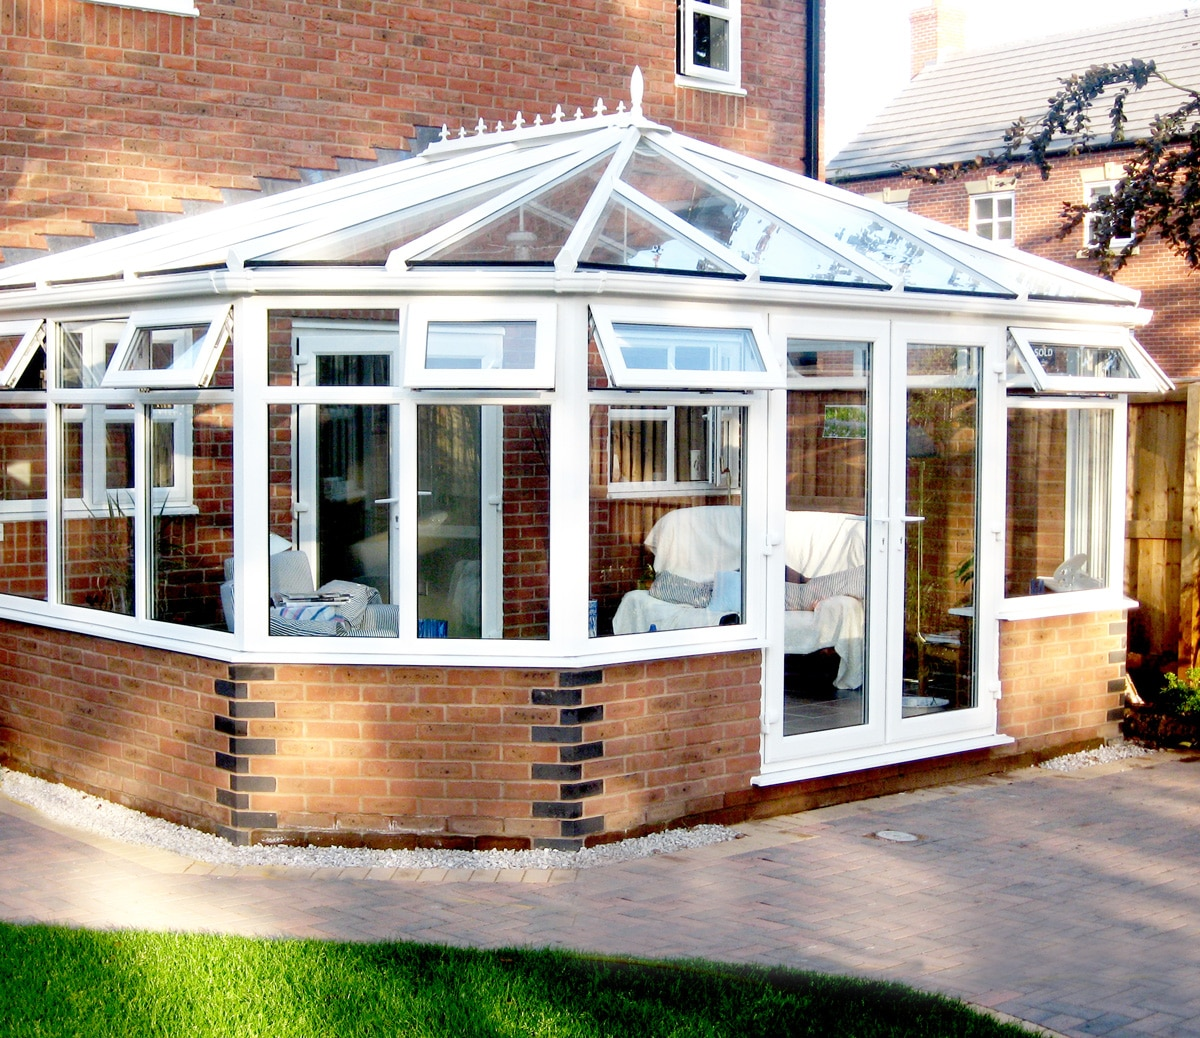 Do You Need Planning Permission for a Conservatory